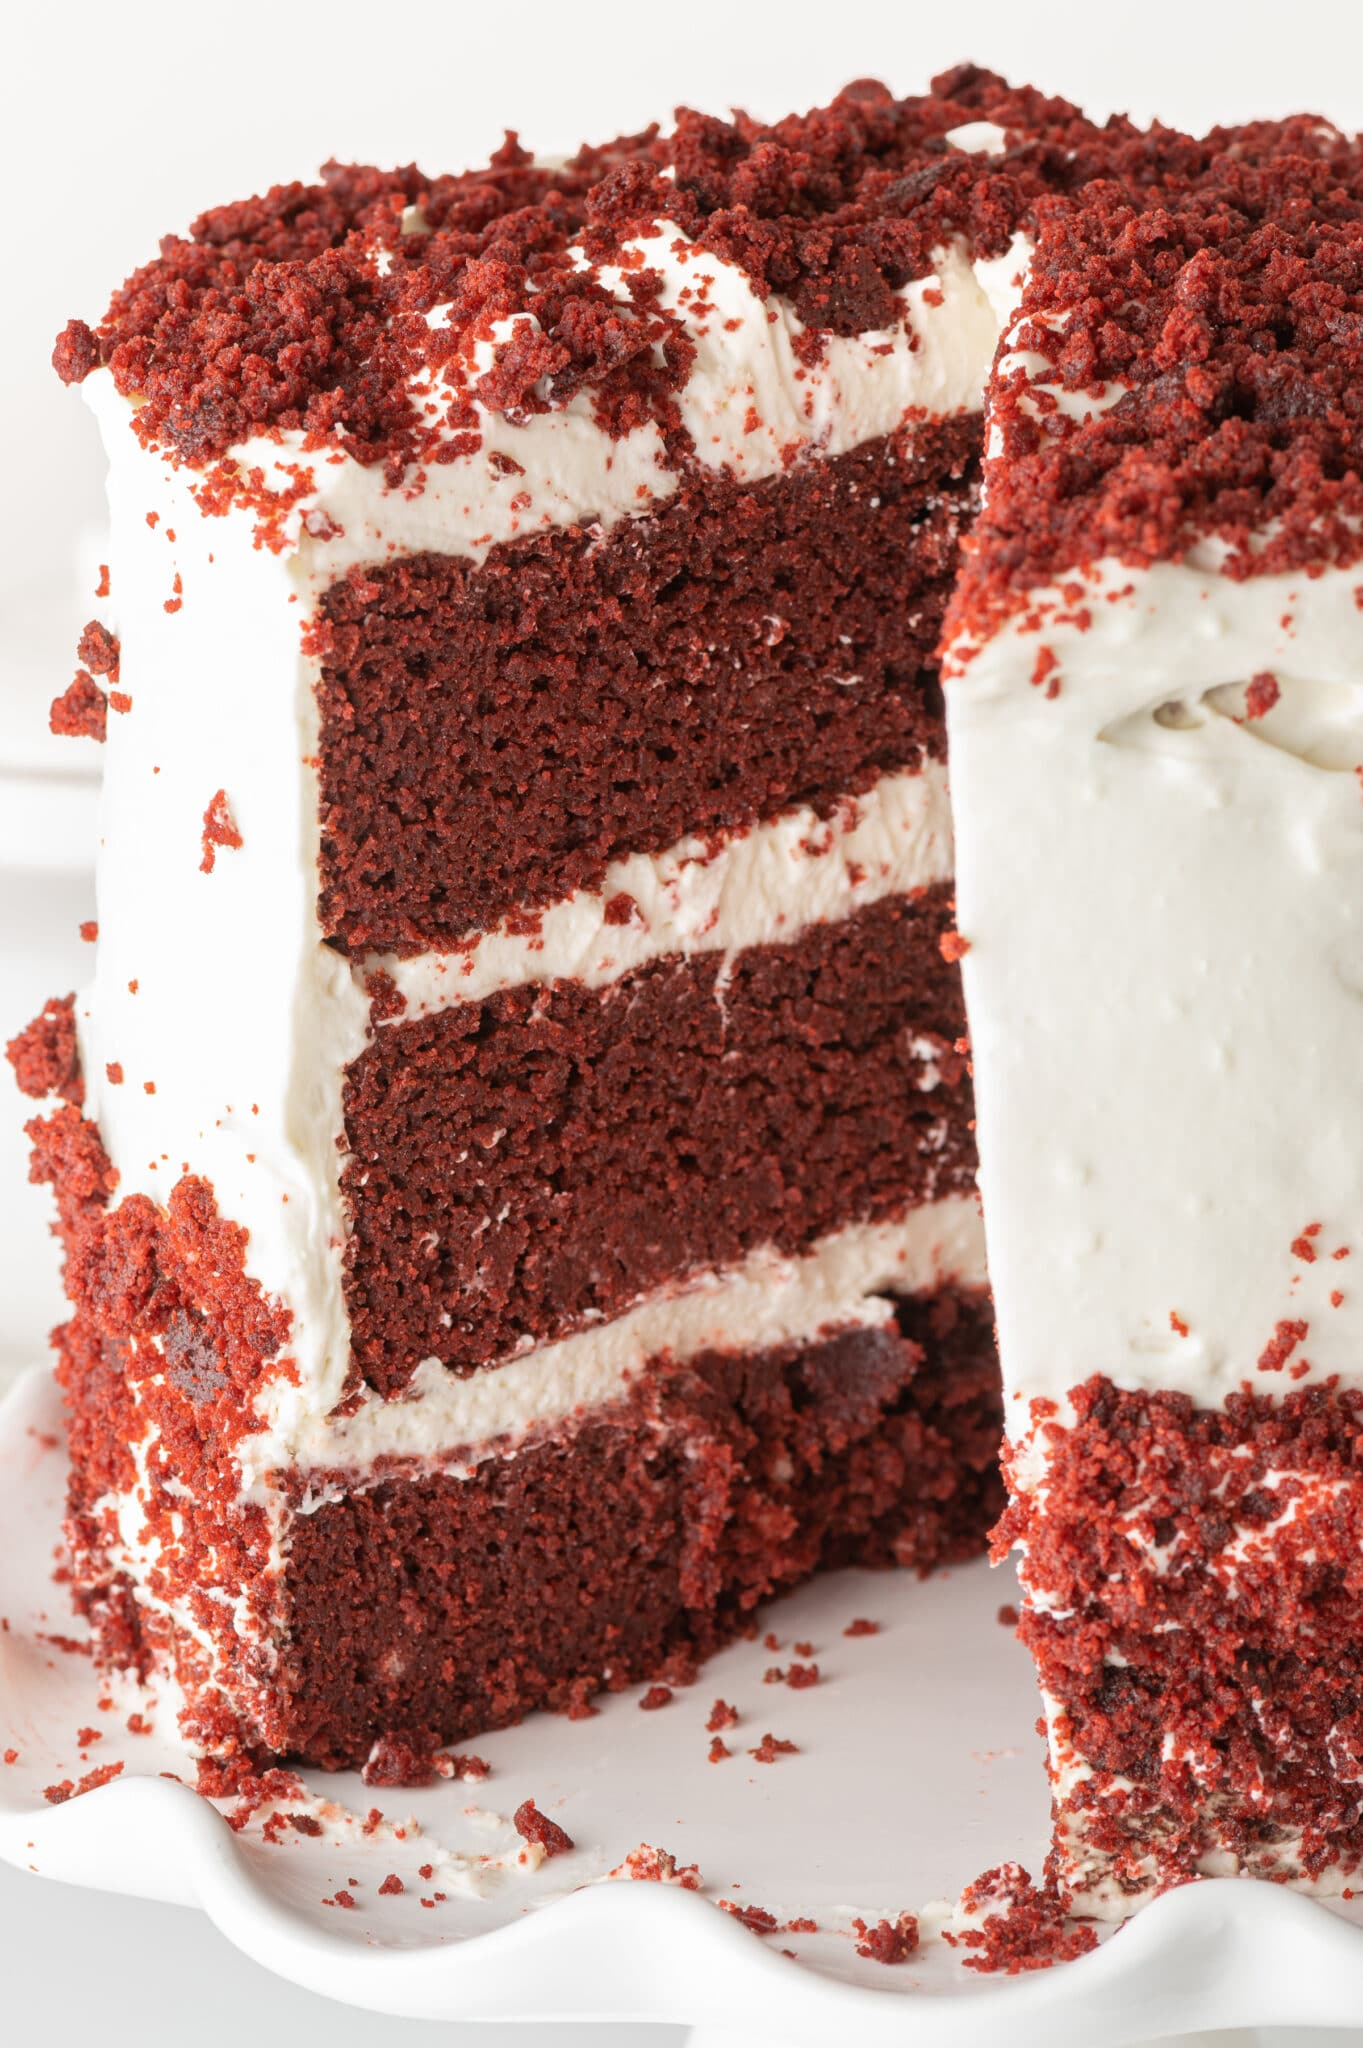 Low carb red velvet cake with white cream cheese frosting.  A slice is a removed and you can see the maroon layers contrasted against the bright white frosting.